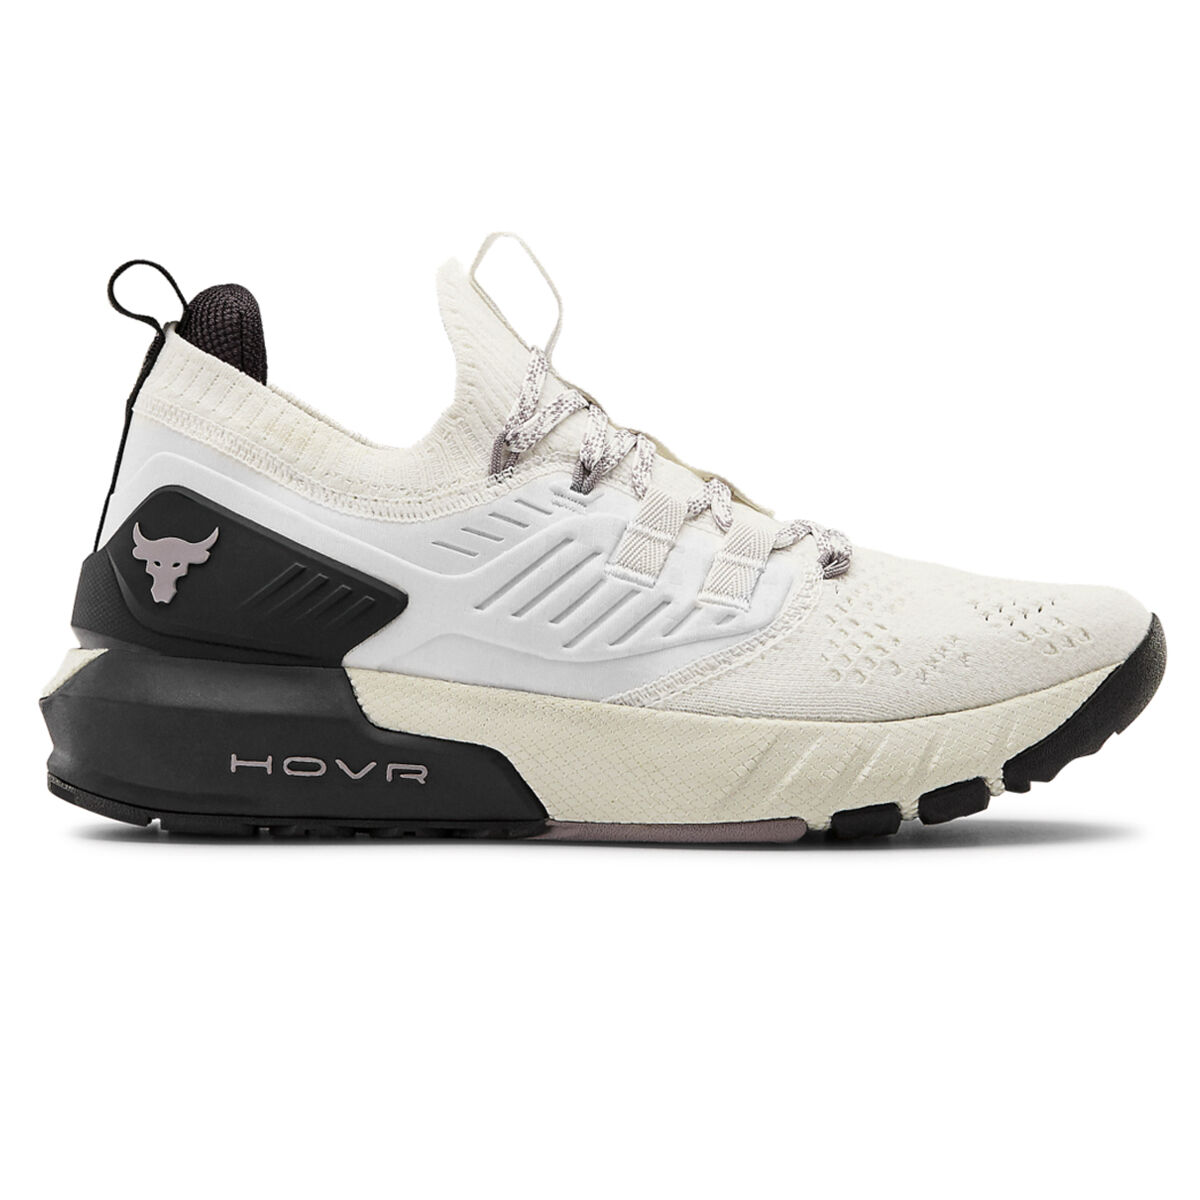 Under Armour Project Rock 3 Womens